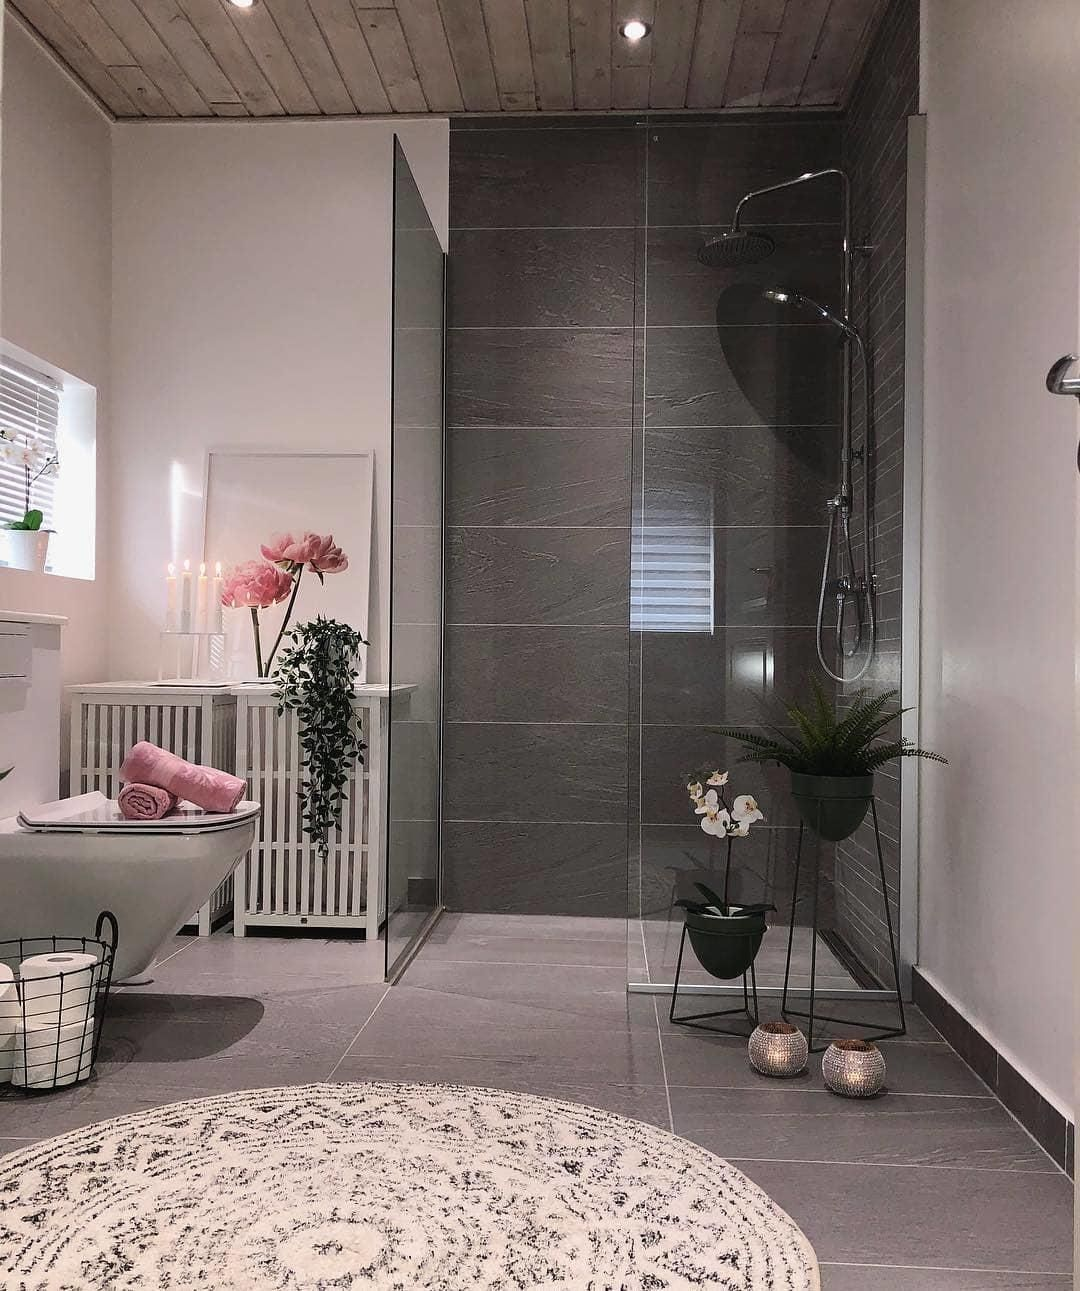 25 Sophisticated Bathroom Decorating Ideas To Beautify Yours Homedecor